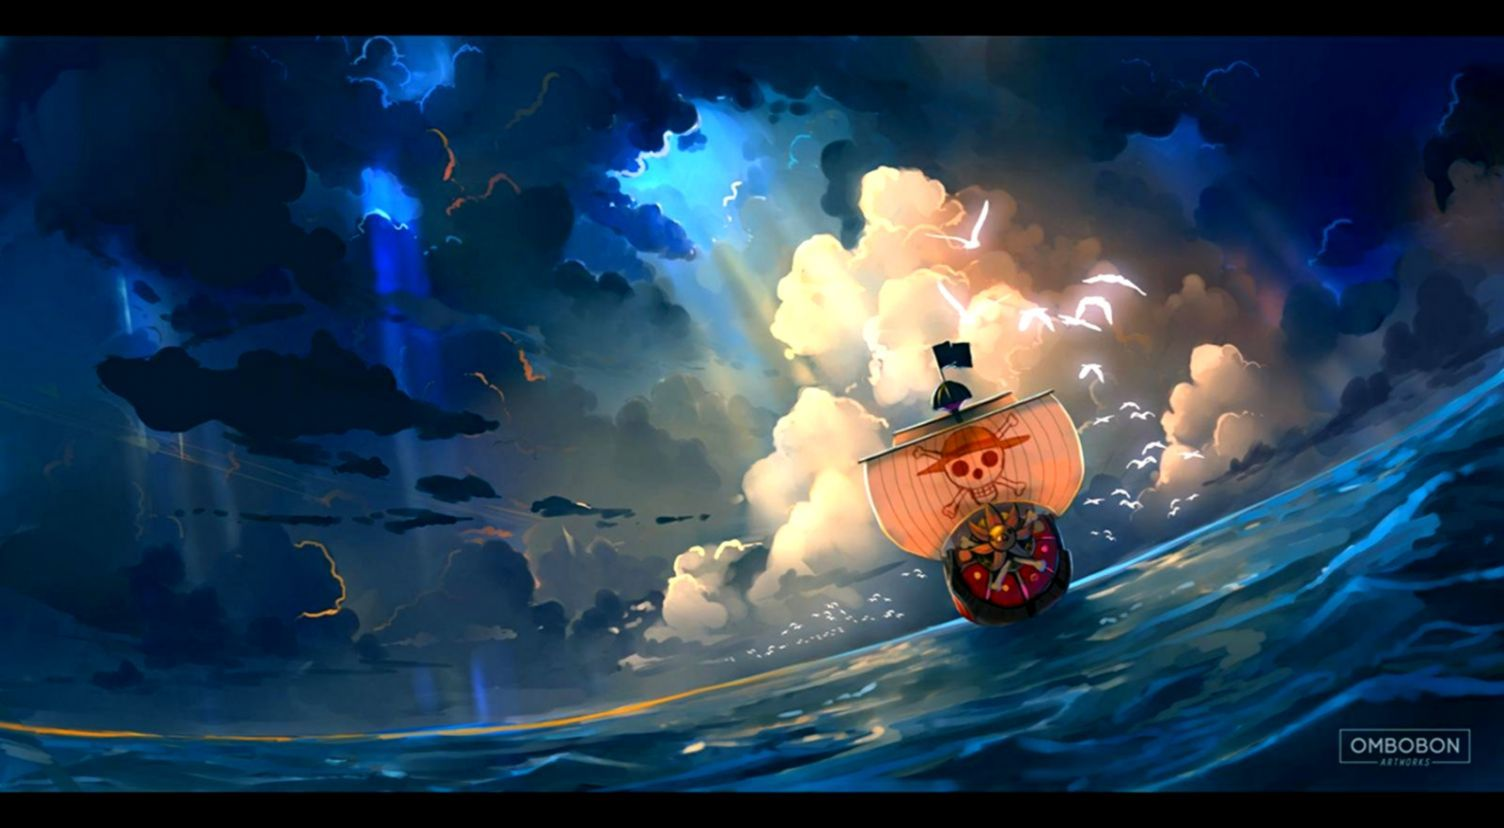 Wallpaper One Piece In 2020 Anime Cover Photo Anime Wallpaper Poster Prints